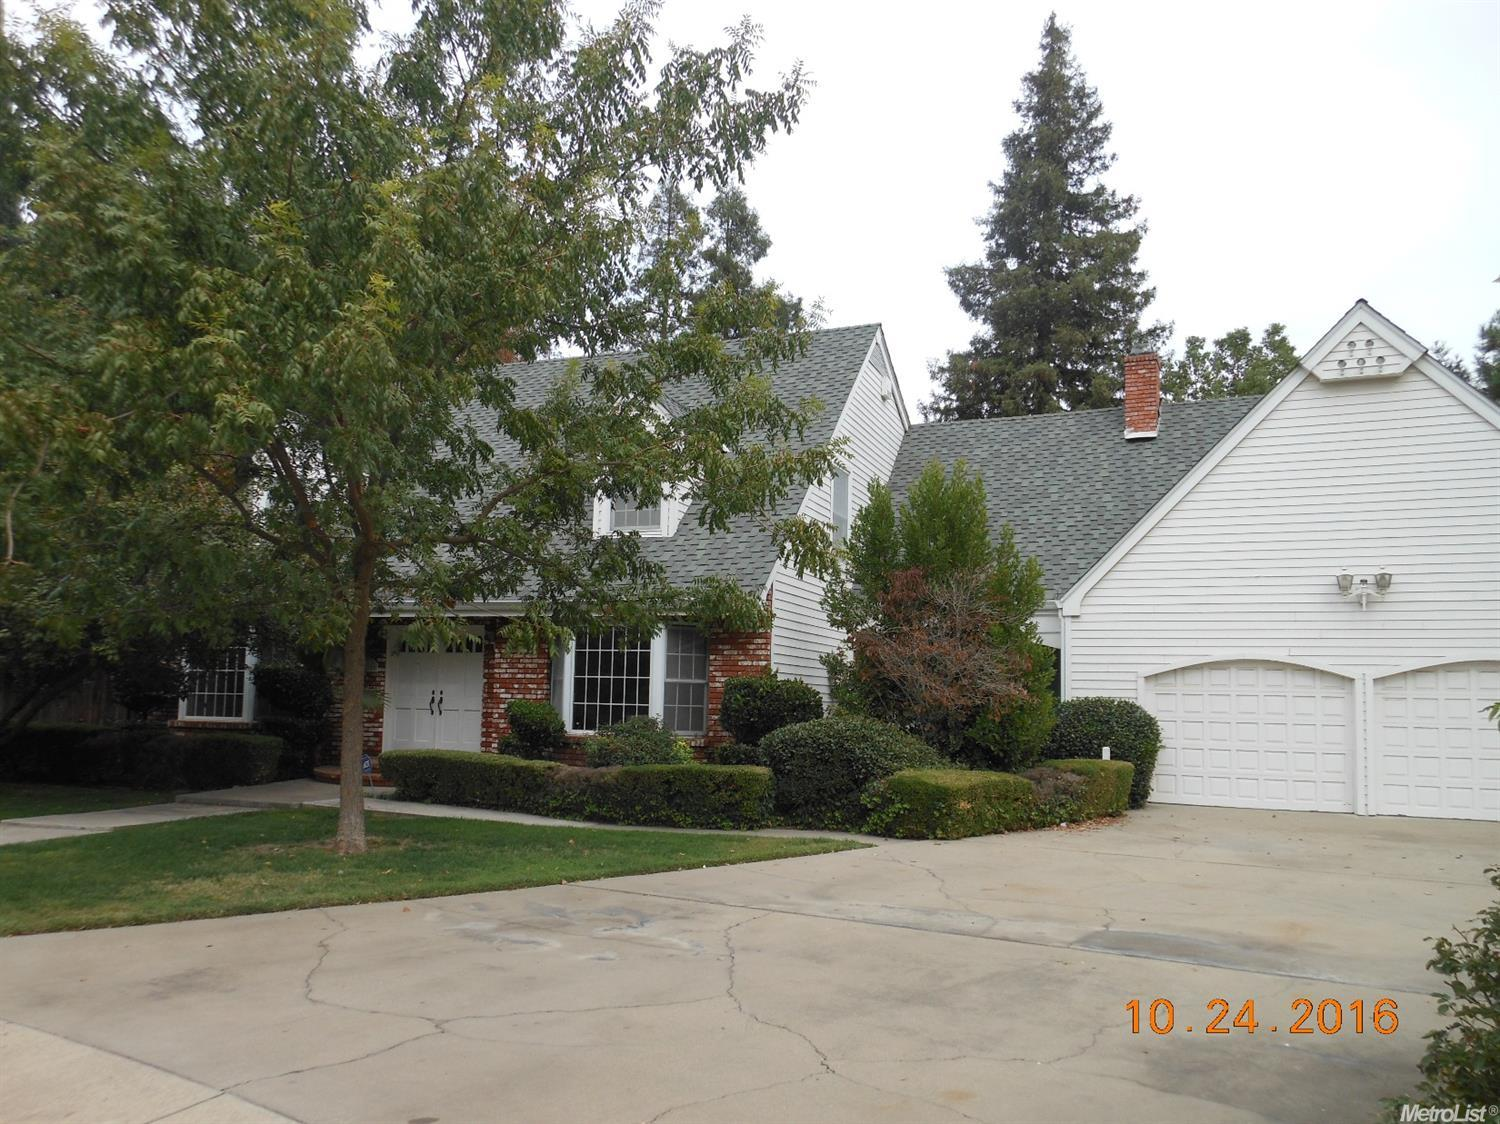 Turlock Area Homes for Sale – Clarence Oliveira, REALTOR